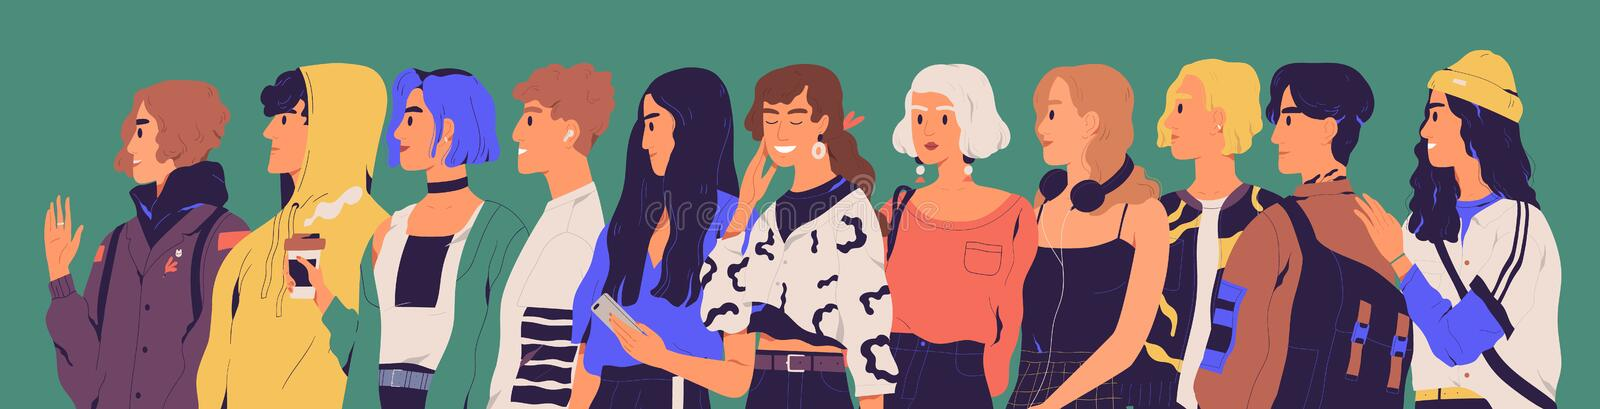 Group of happy teenagers, students, pupils or millennials. Portrait of stylish smiling teenage boys and girls standing royalty free illustration